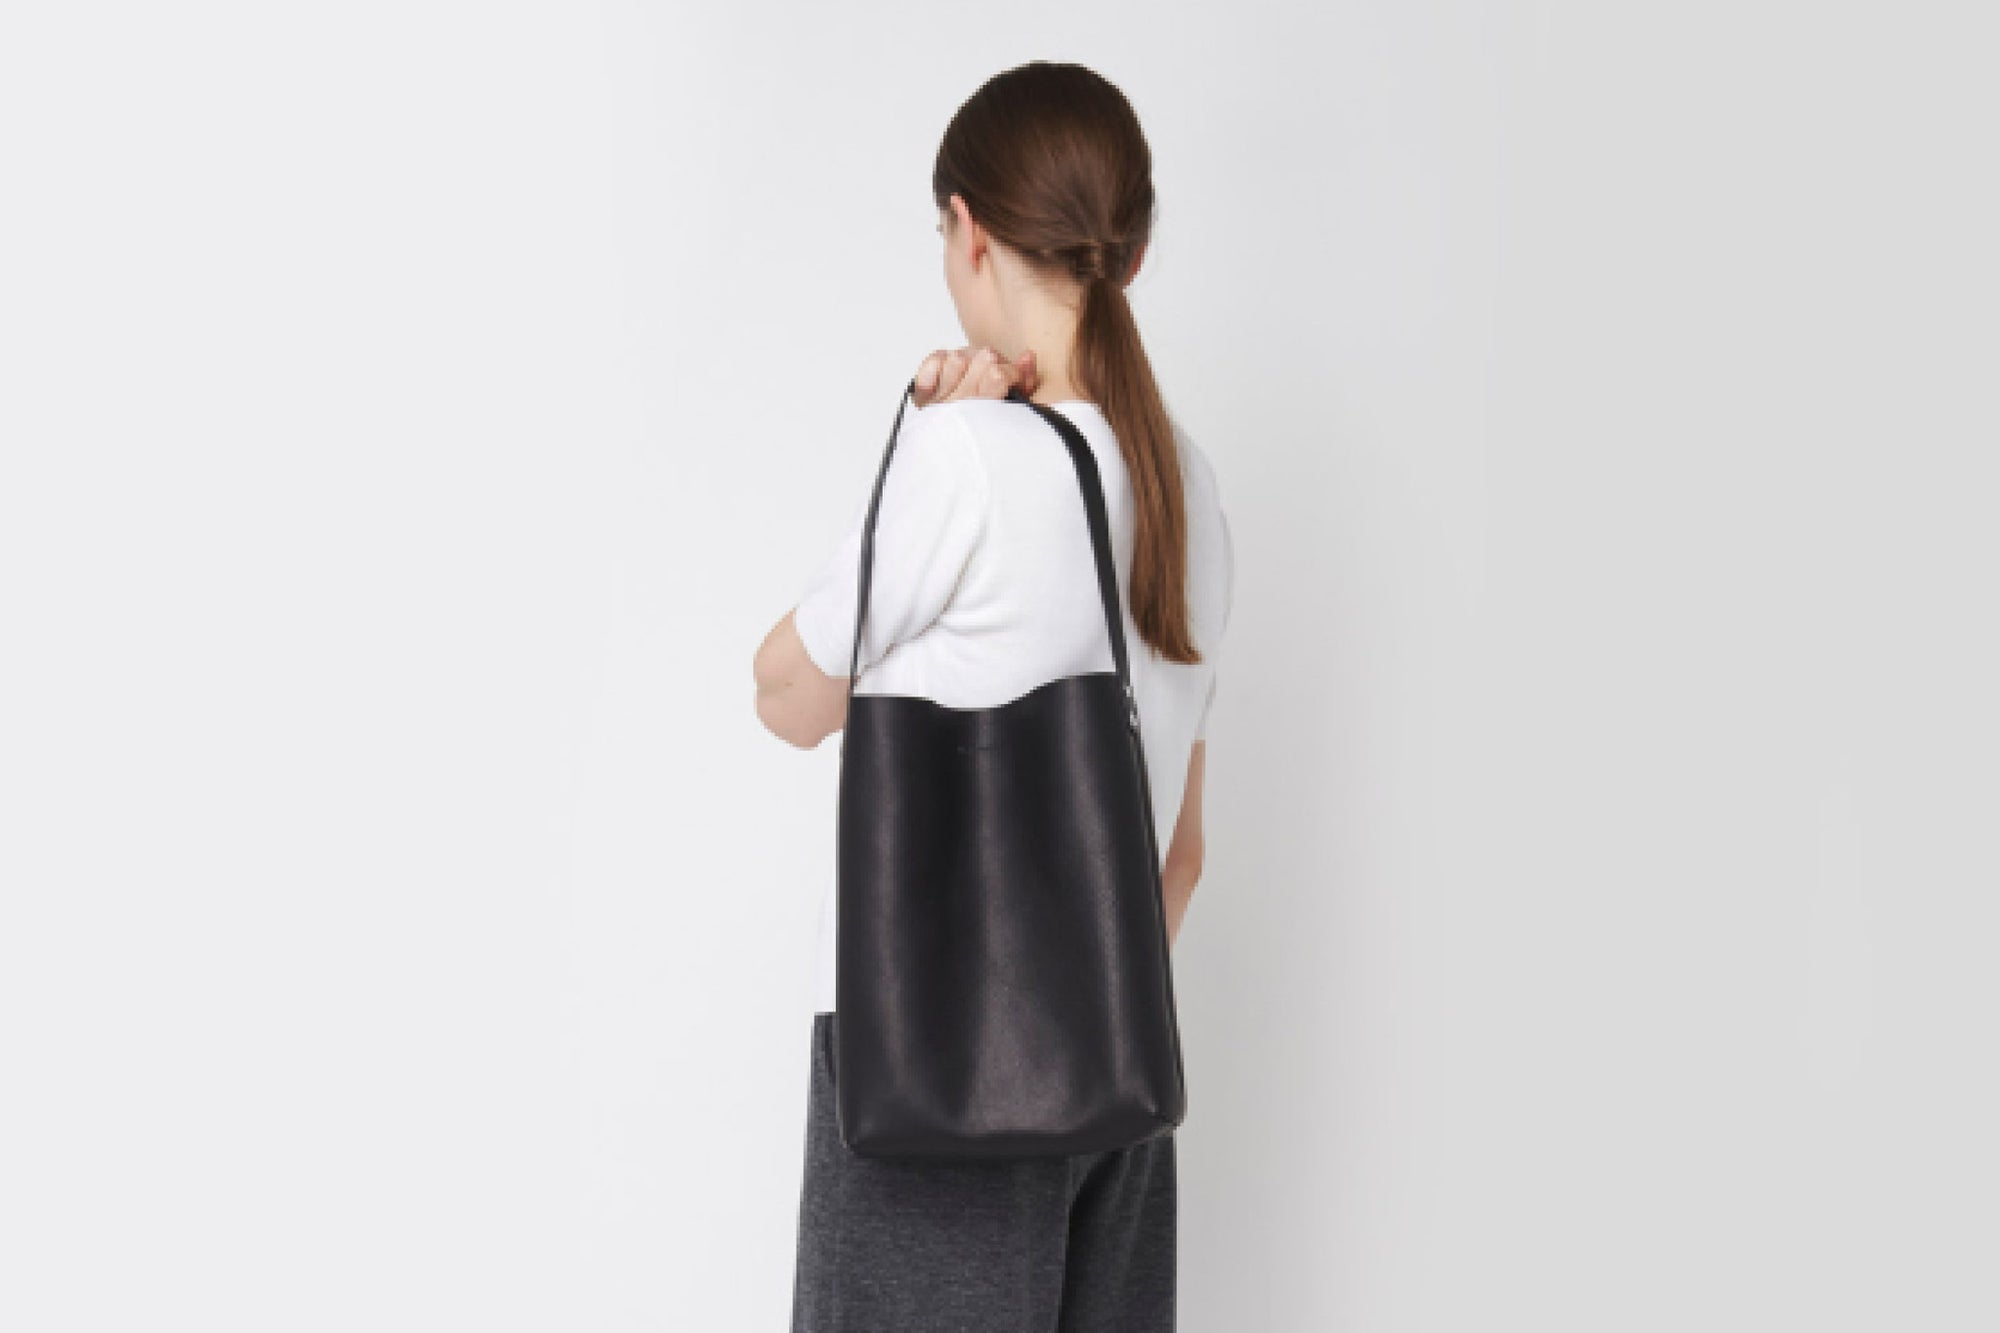 Introducing: The Minimal Tote